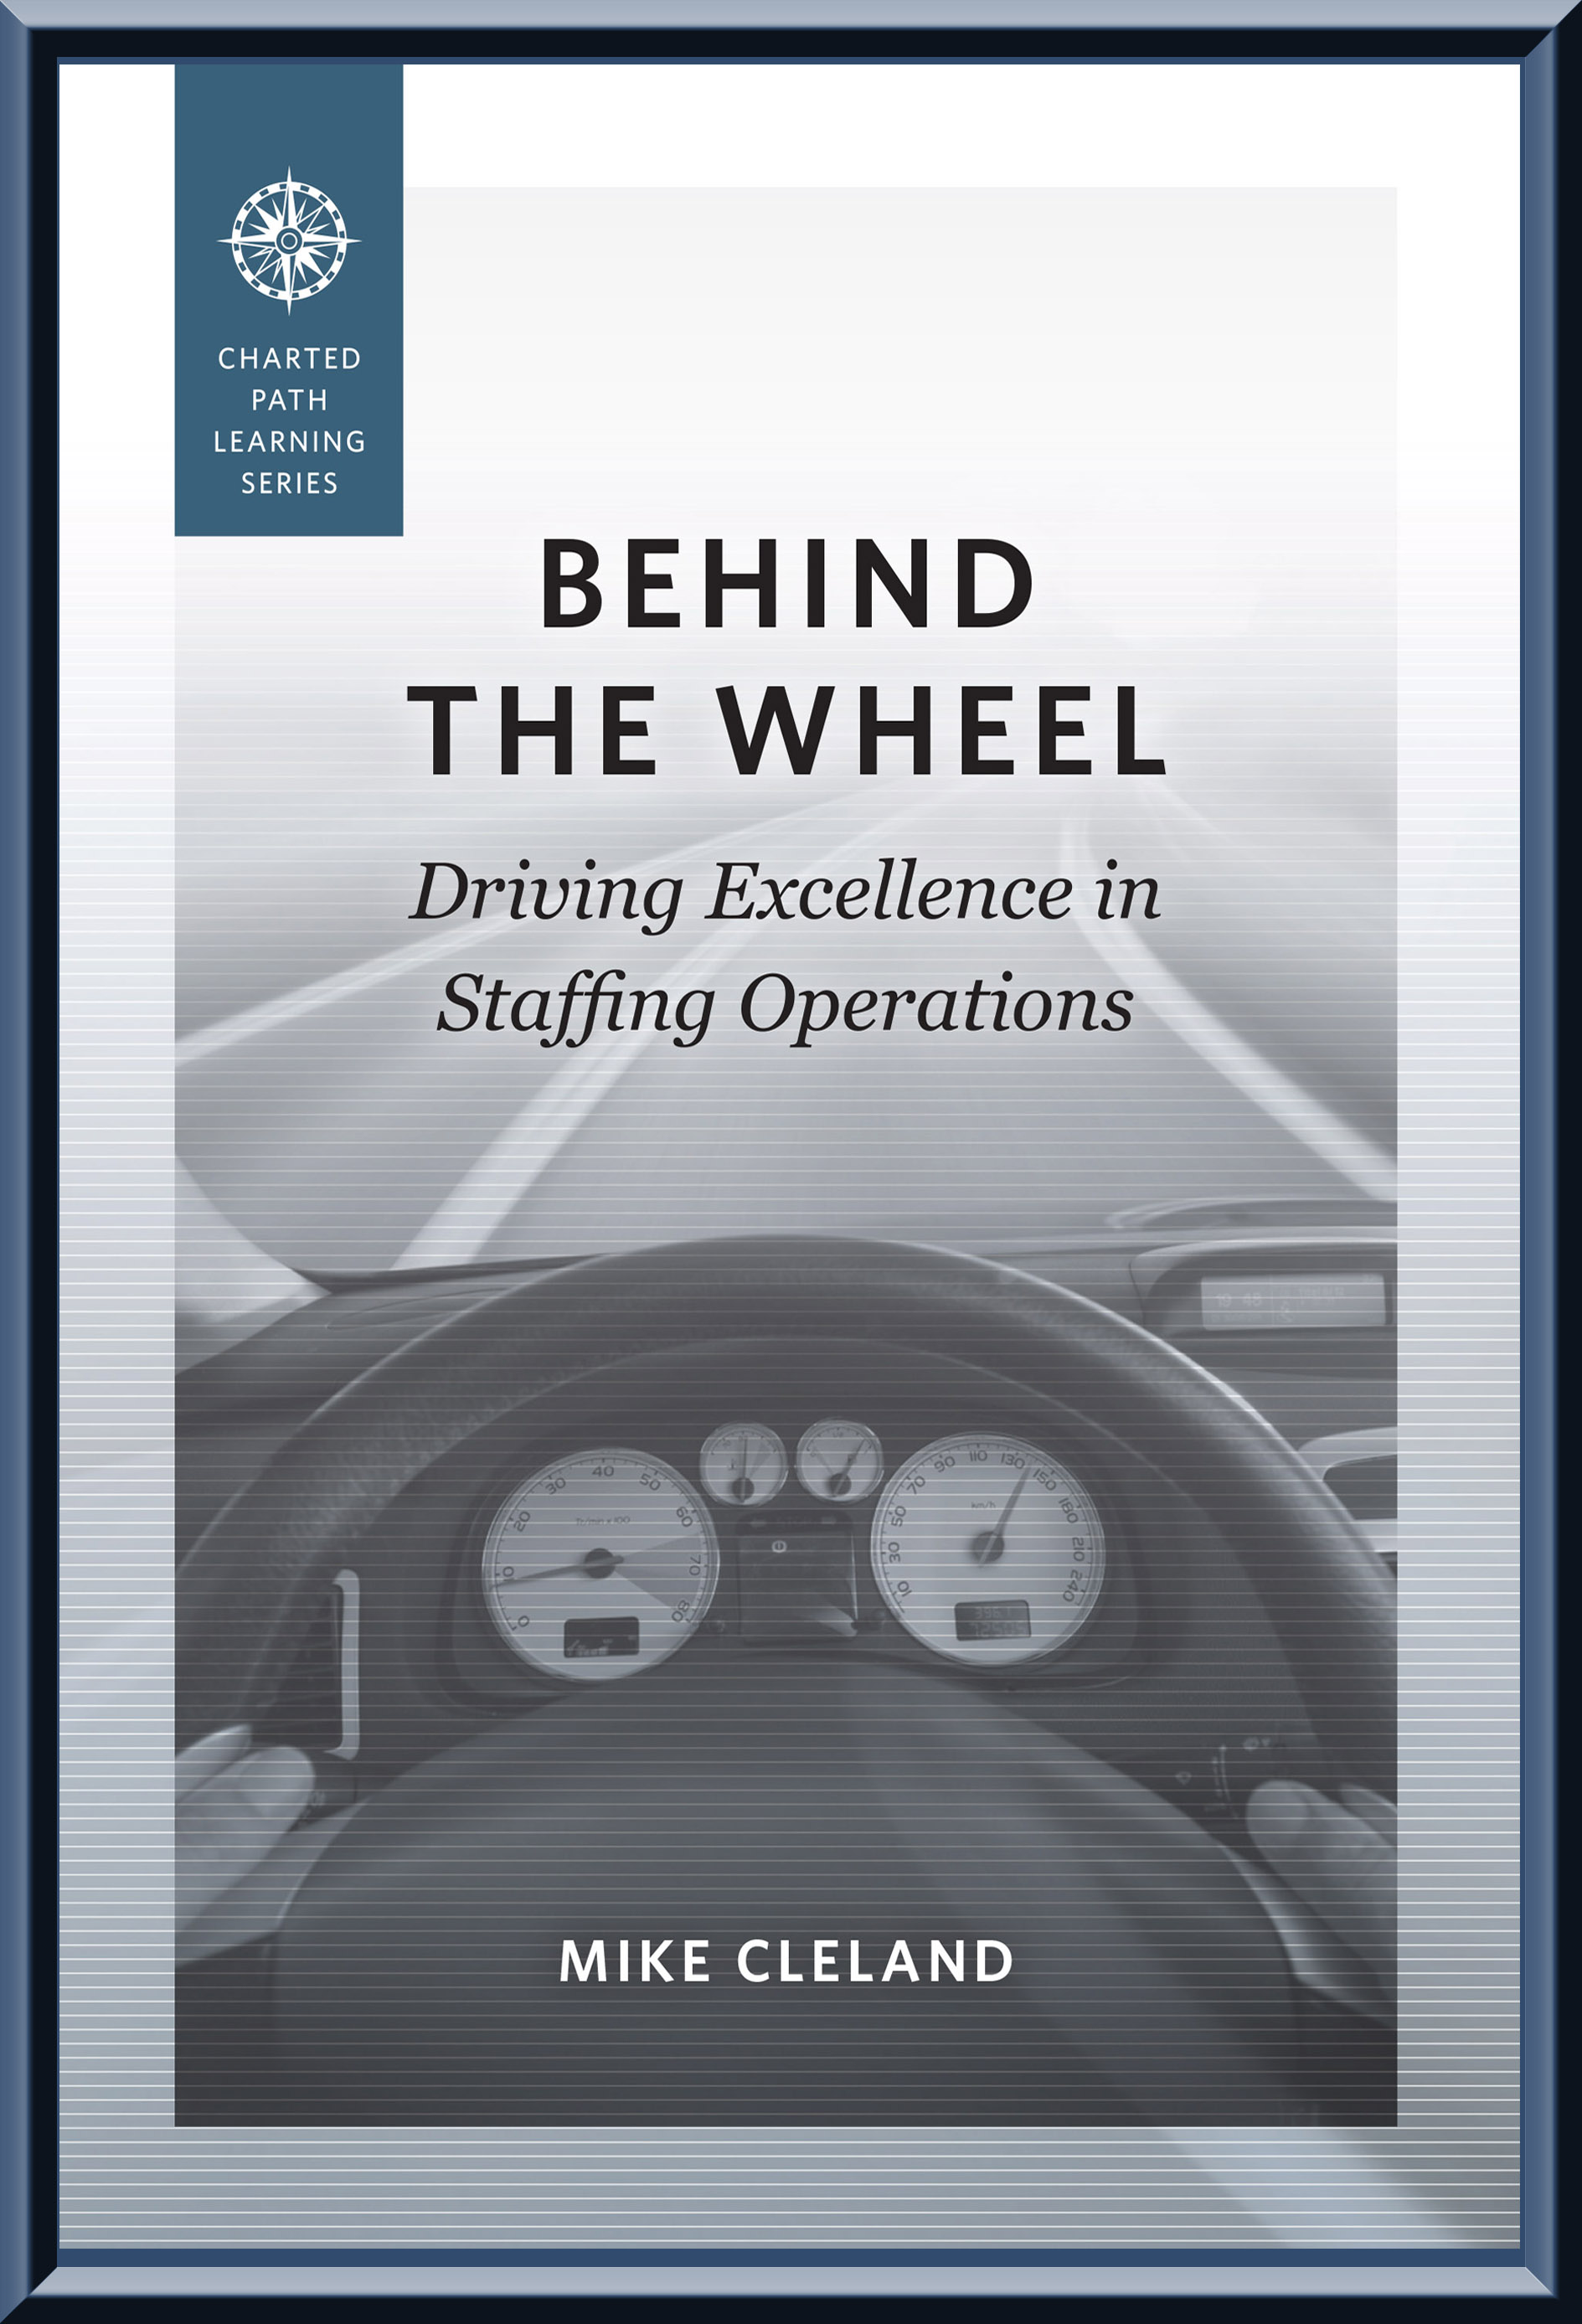 Behind the Wheel: Driving Excellence in Staffing Operations